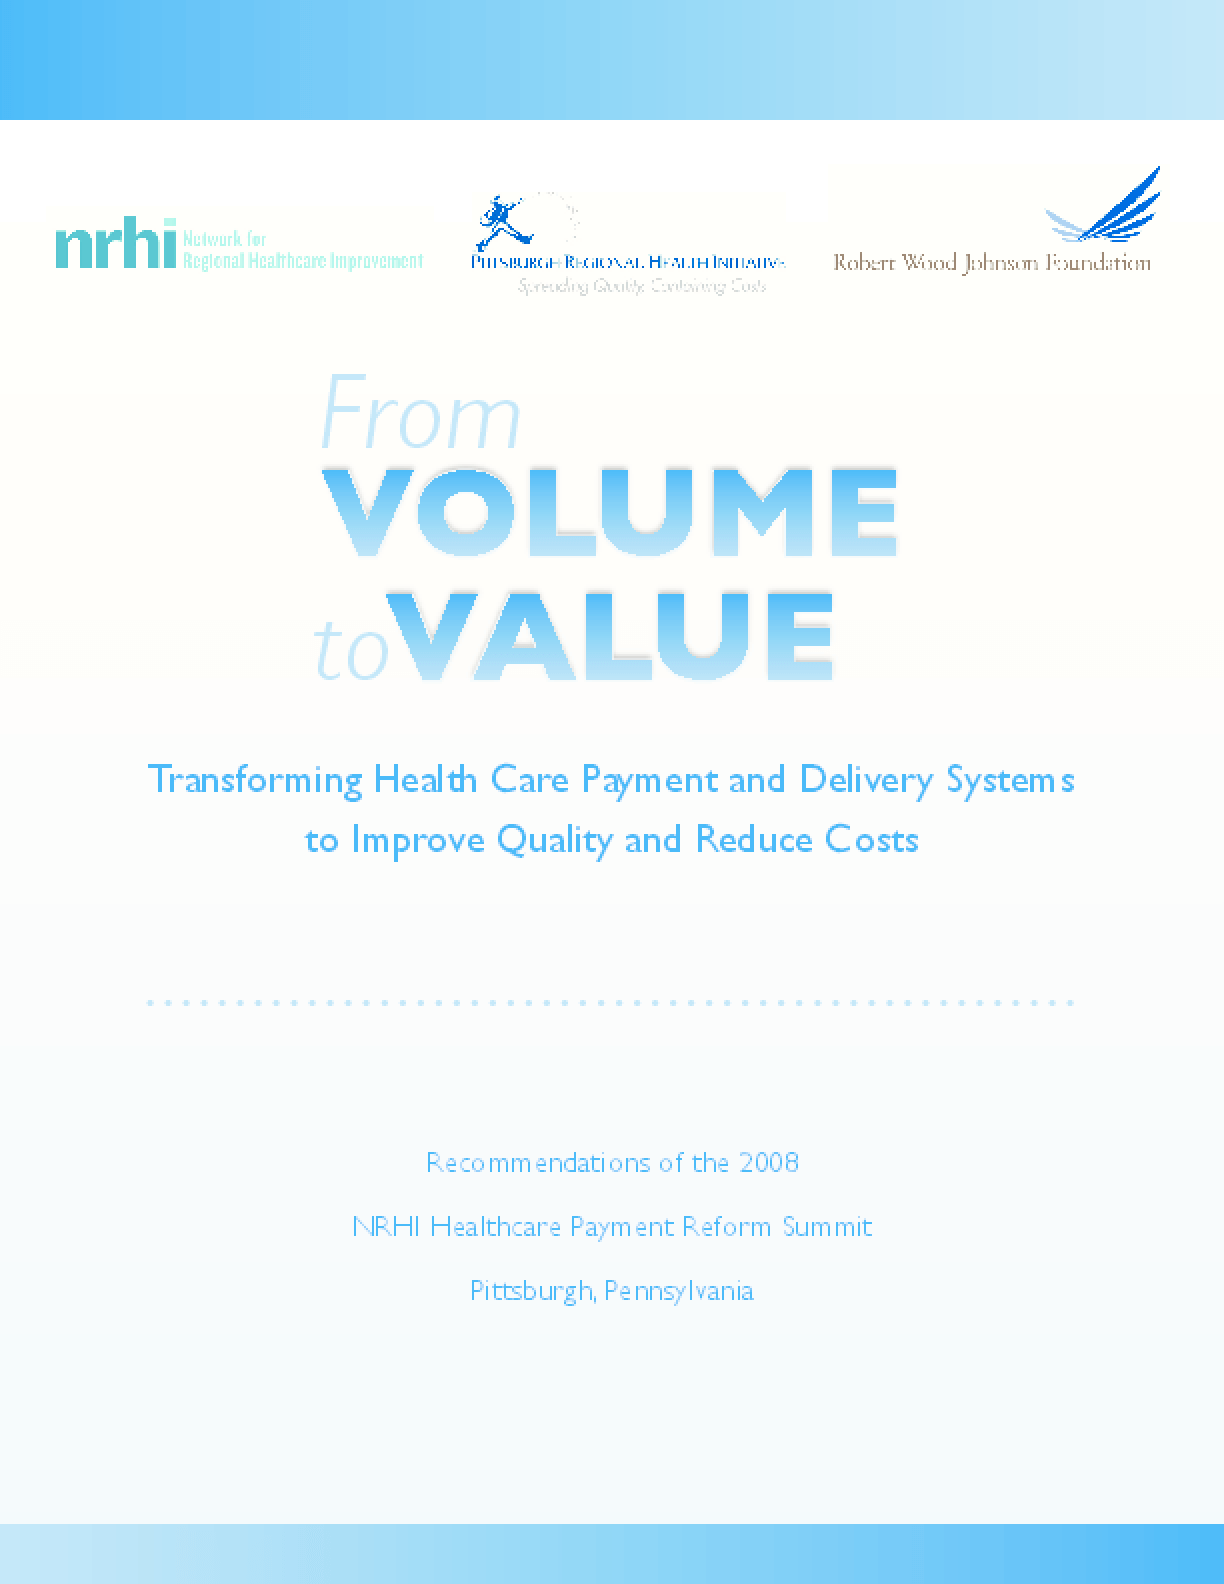 From Volume to Value: Transforming Health Care Payment and Delivery Systems to Improve Quality and Reduce Costs